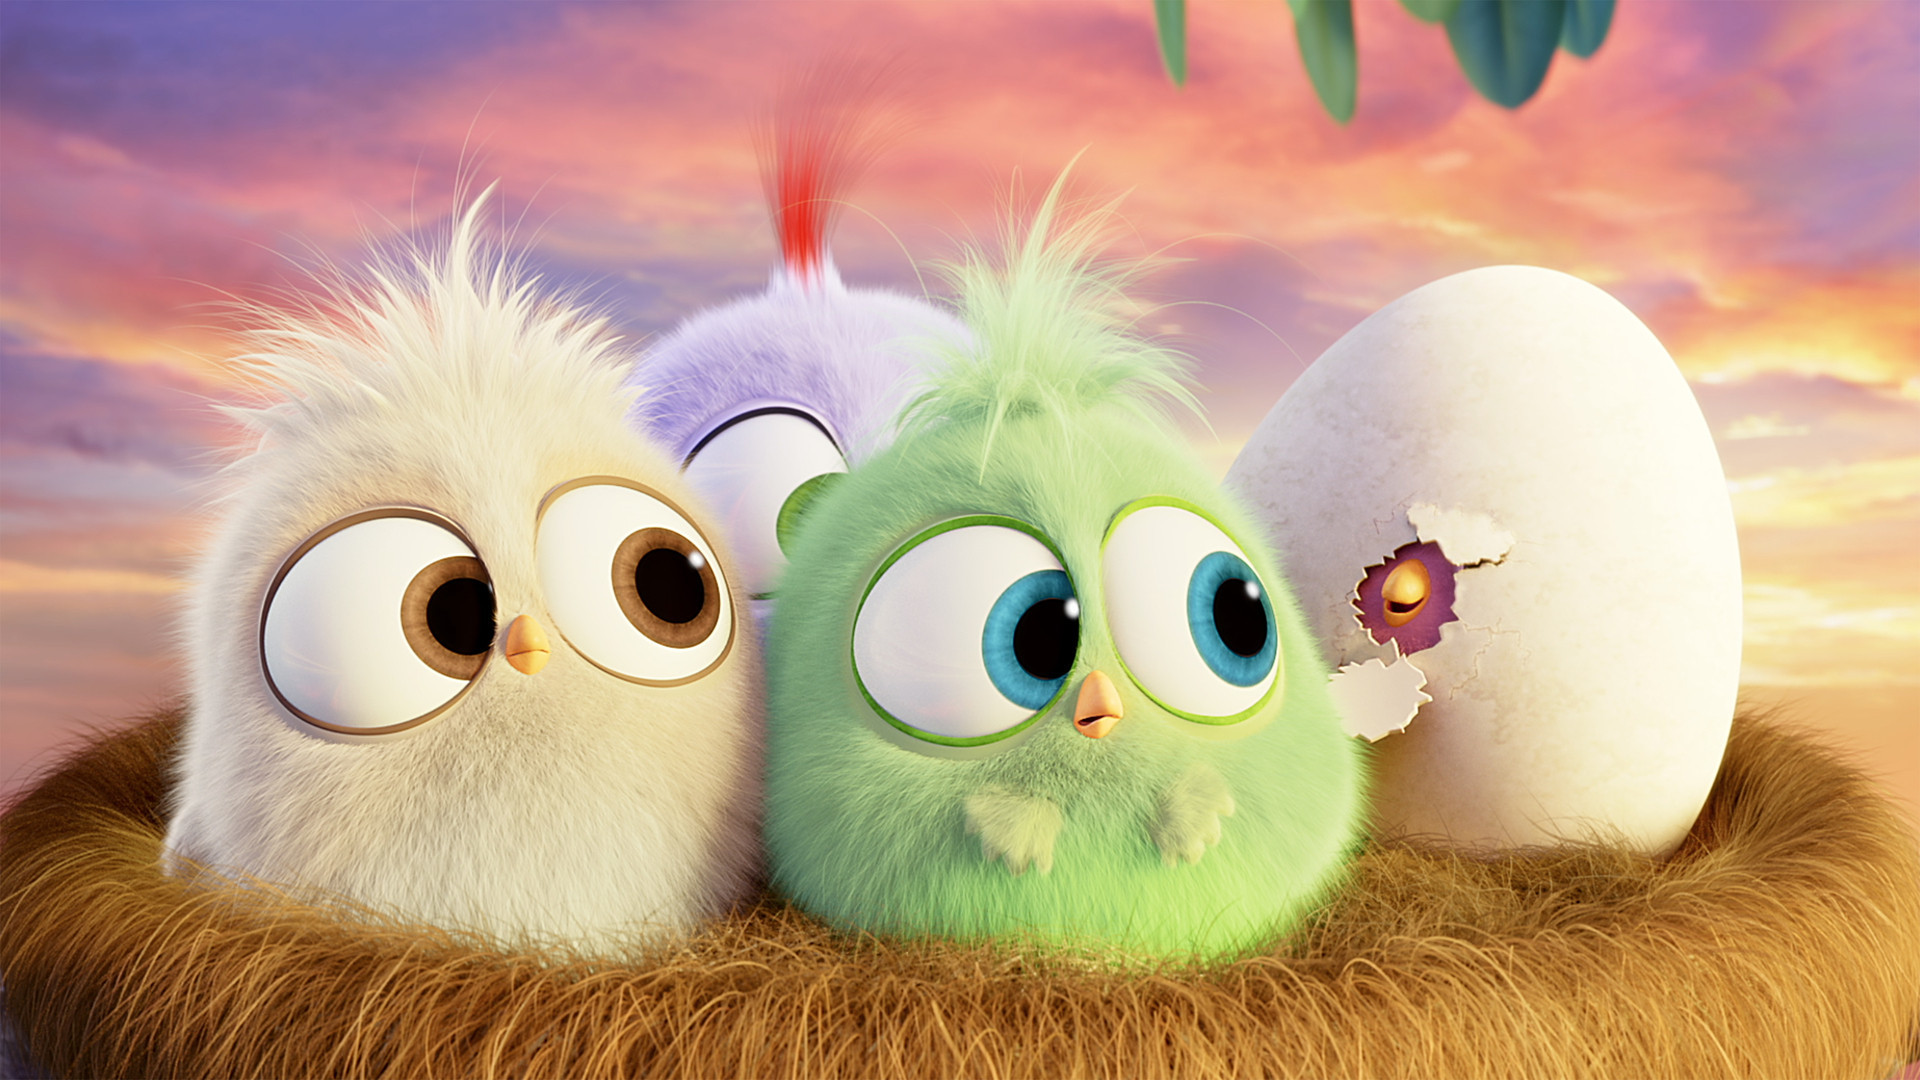 Hatchlings Angry Birds Hd Wallpaper [1920×1080] Need #iPhone #6S #Plus # Wallpaper/ #Background for #IPhone6SPlus? Follow iPhone 6S Plus 3Wallpapers…